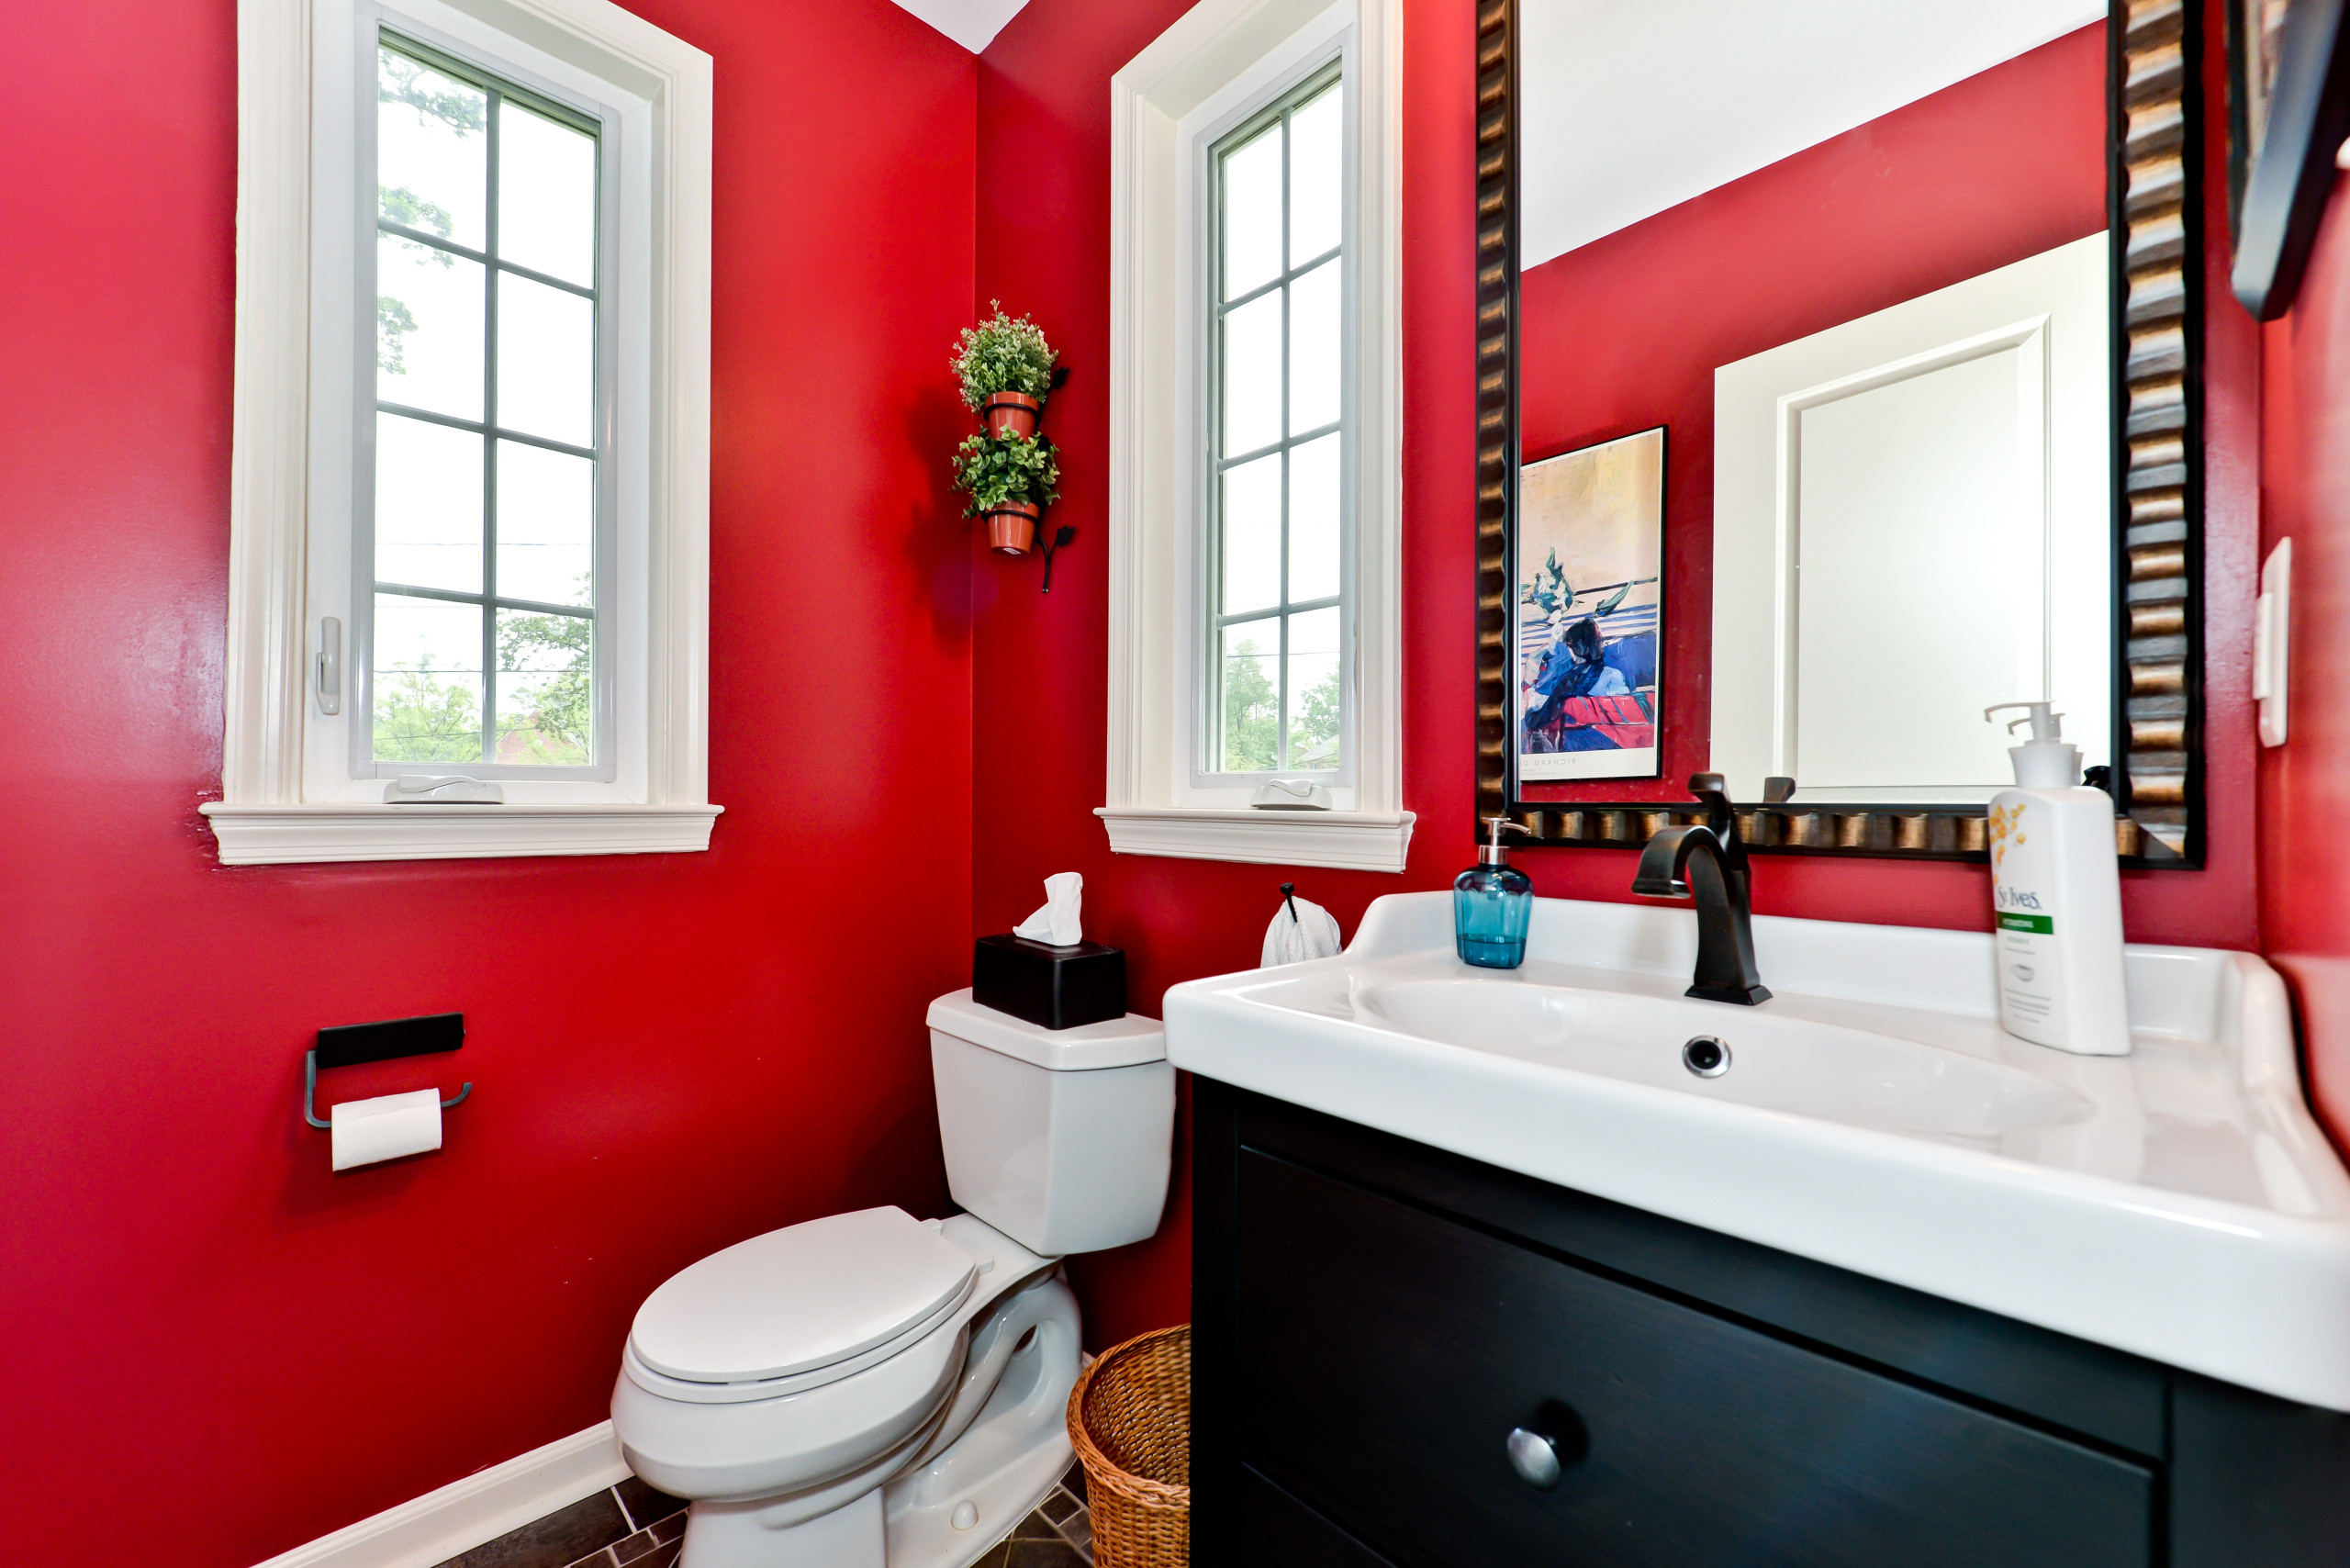 75 Beautiful Red Bathroom Pictures Ideas May 2021 Houzz